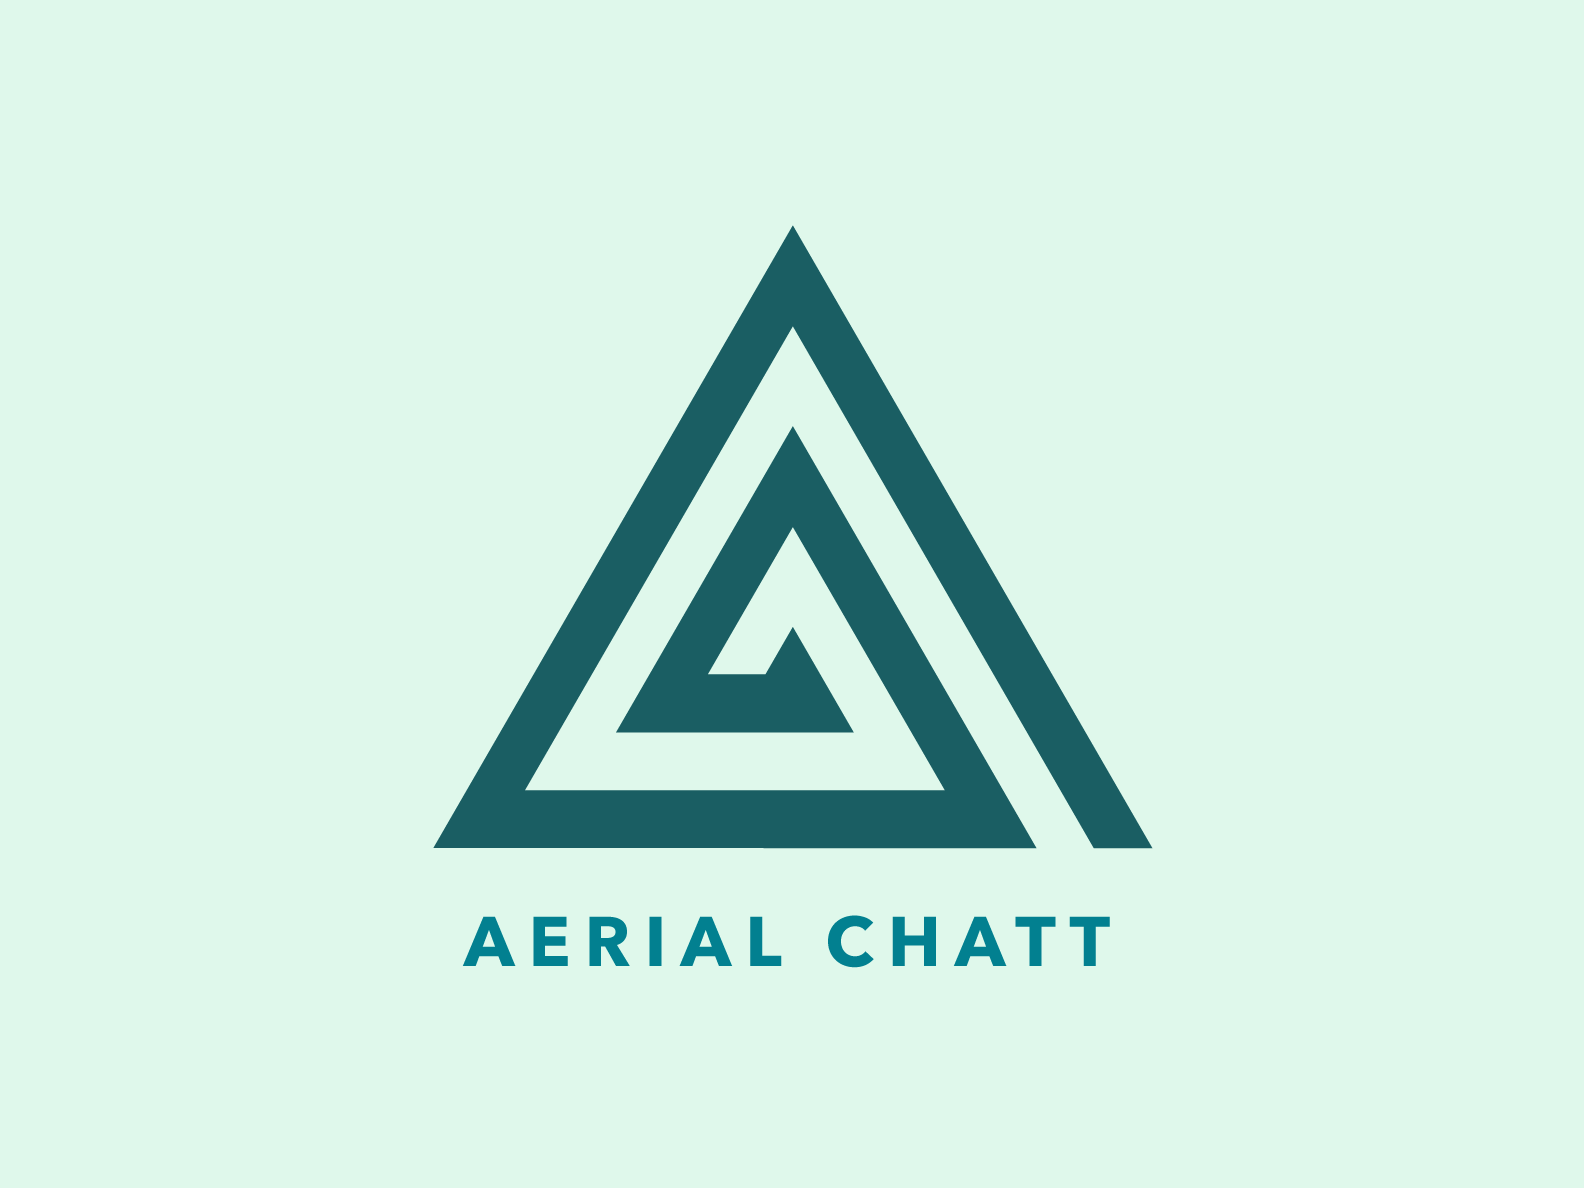 Aerial Chatt Logo teal green geometric grid triangle logo aerial